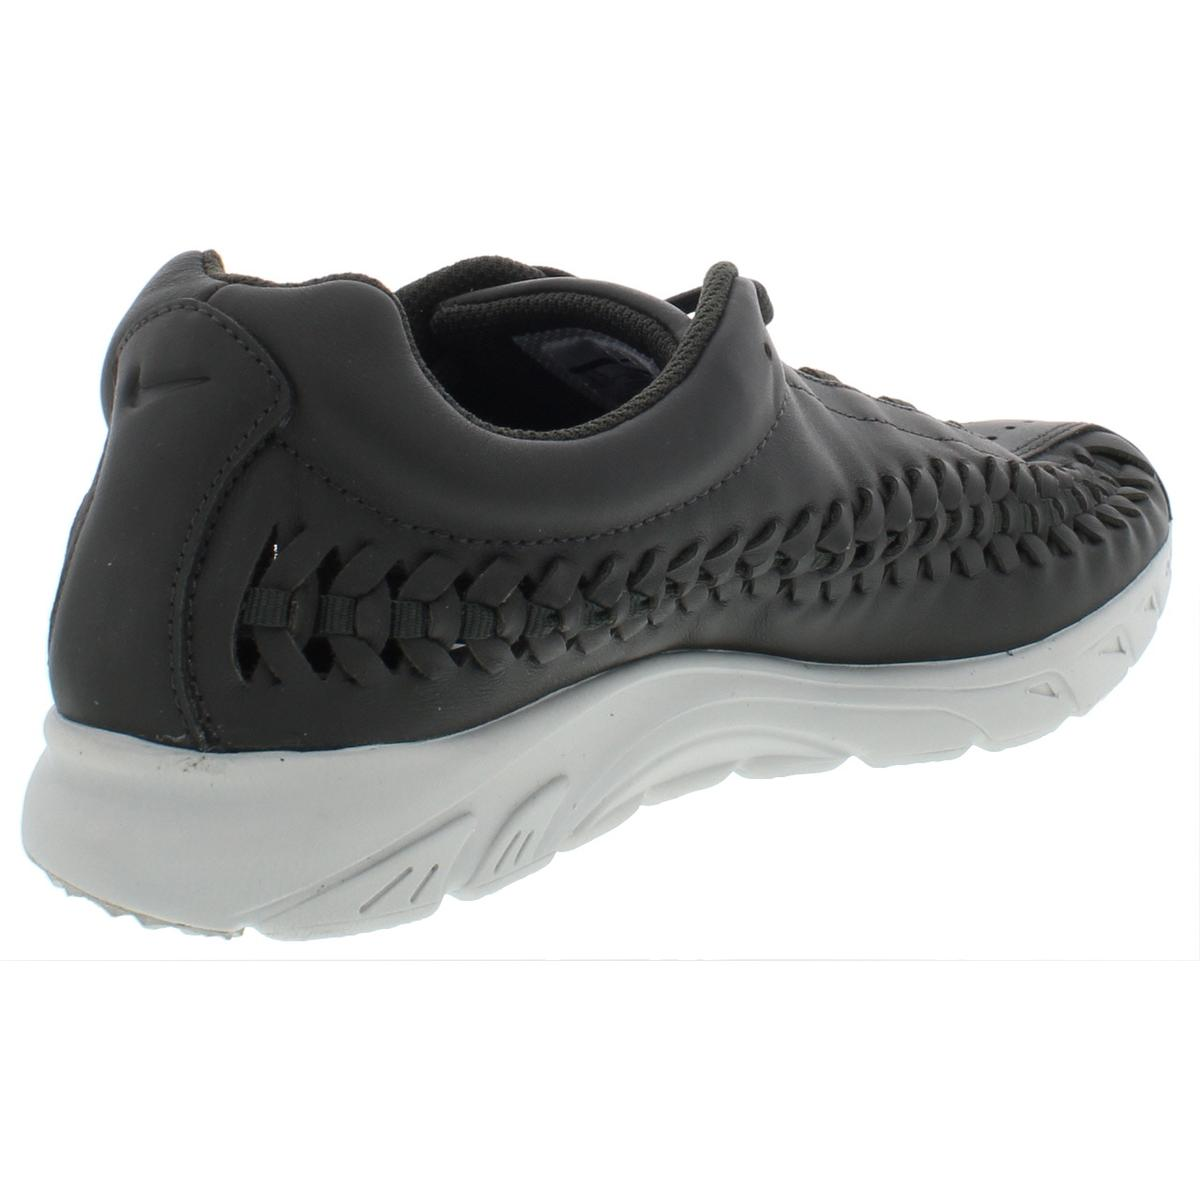 Nike-Mens-Mayfly-Woven-Suede-Woven-Training-Fashion-Sneakers-Shoes-BHFO-2898 thumbnail 16